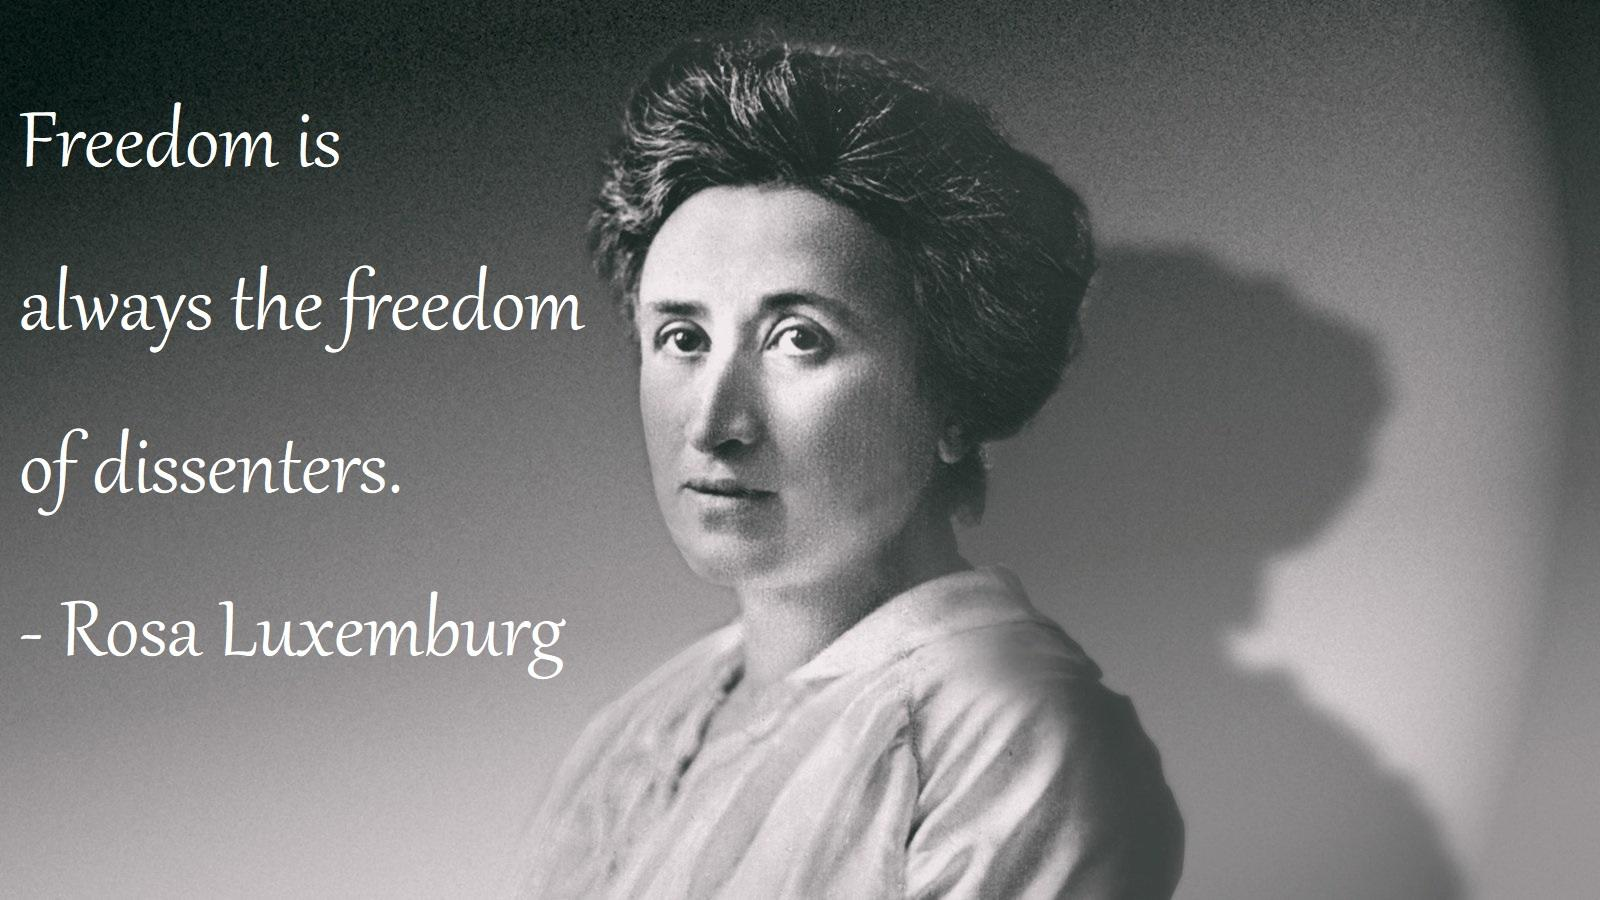 Freedom is always the freedom of dissenters. -Rosa Luxemburg [1600 x 900] [OC]